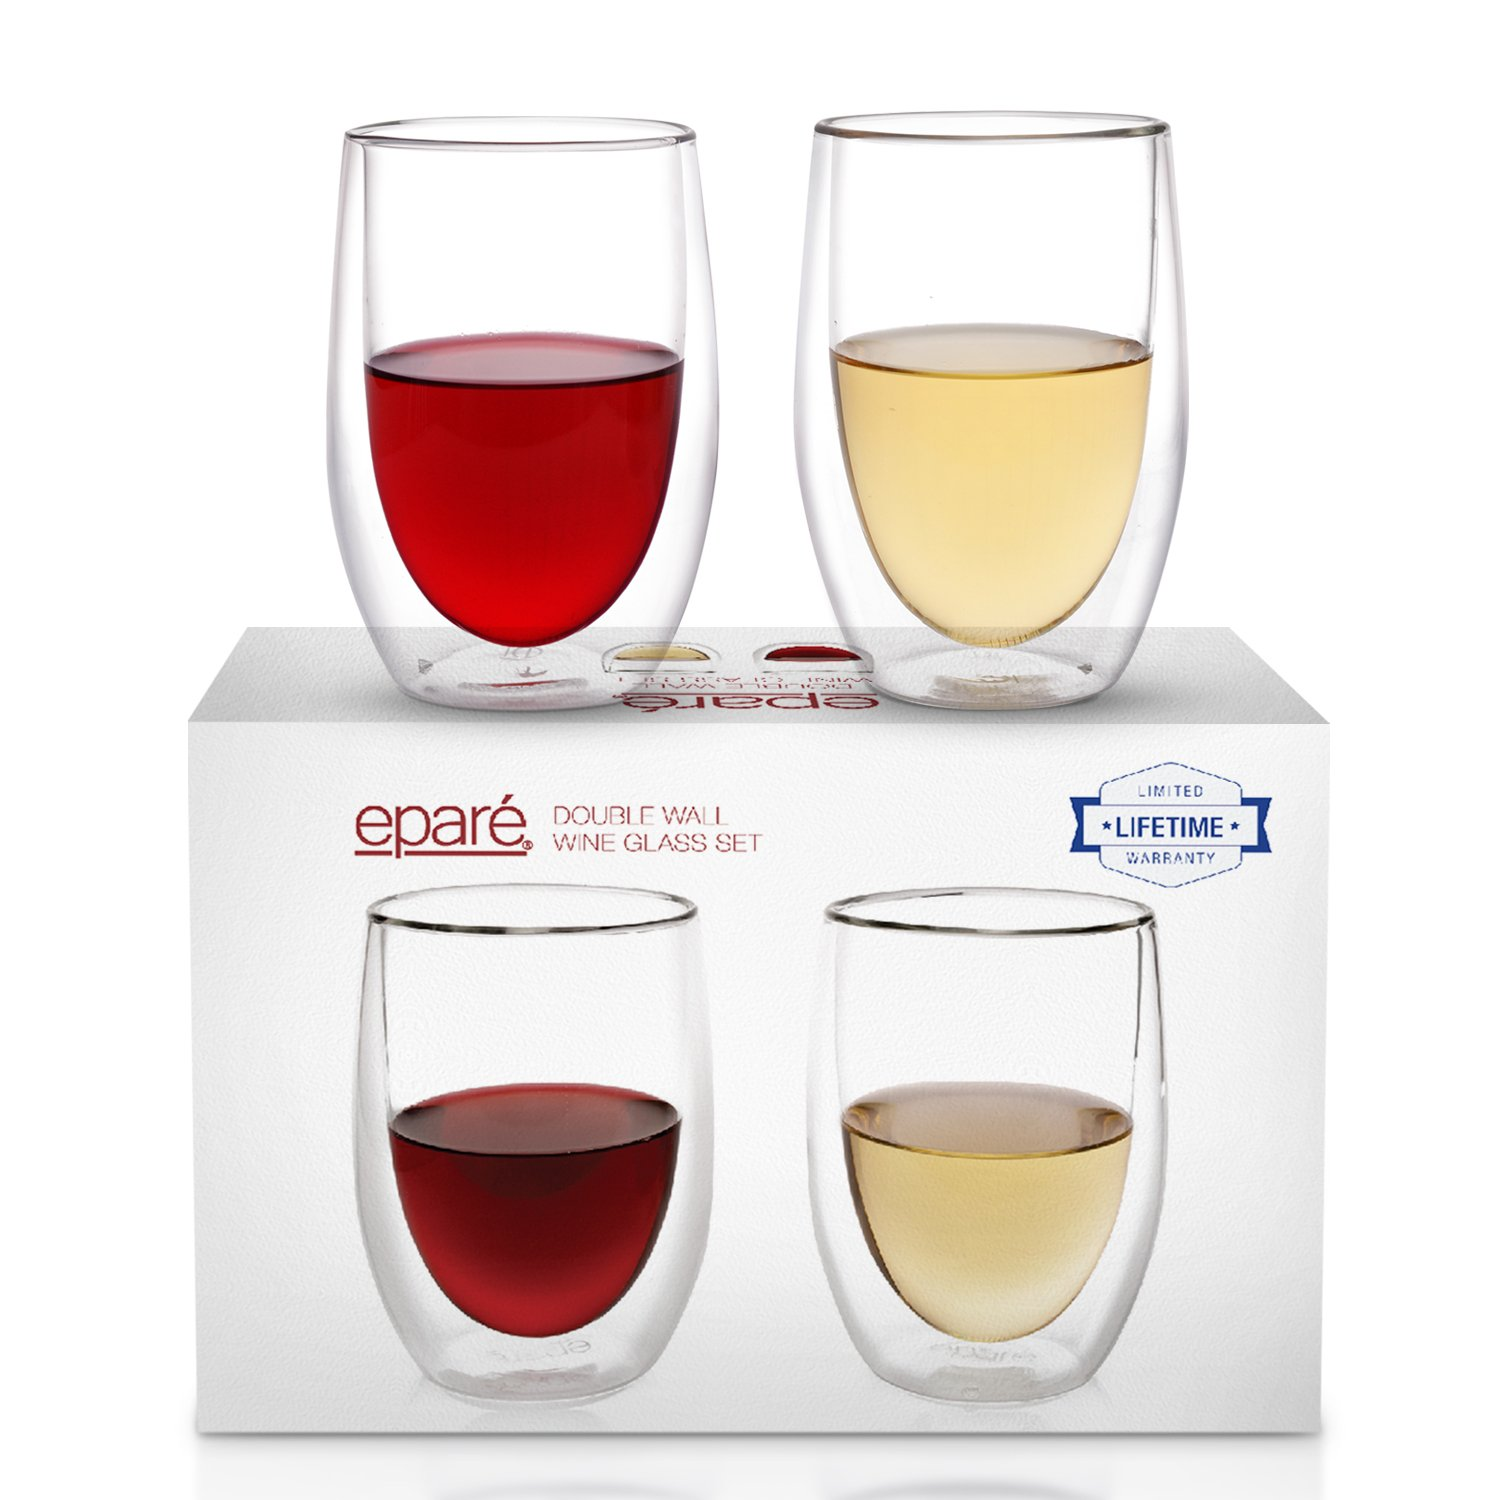 Eparé Wine Glasses - Set of 2 - Insulated Double-Walled Glassware - Stemless Drinking Glass - Red & White Wine Tumblers